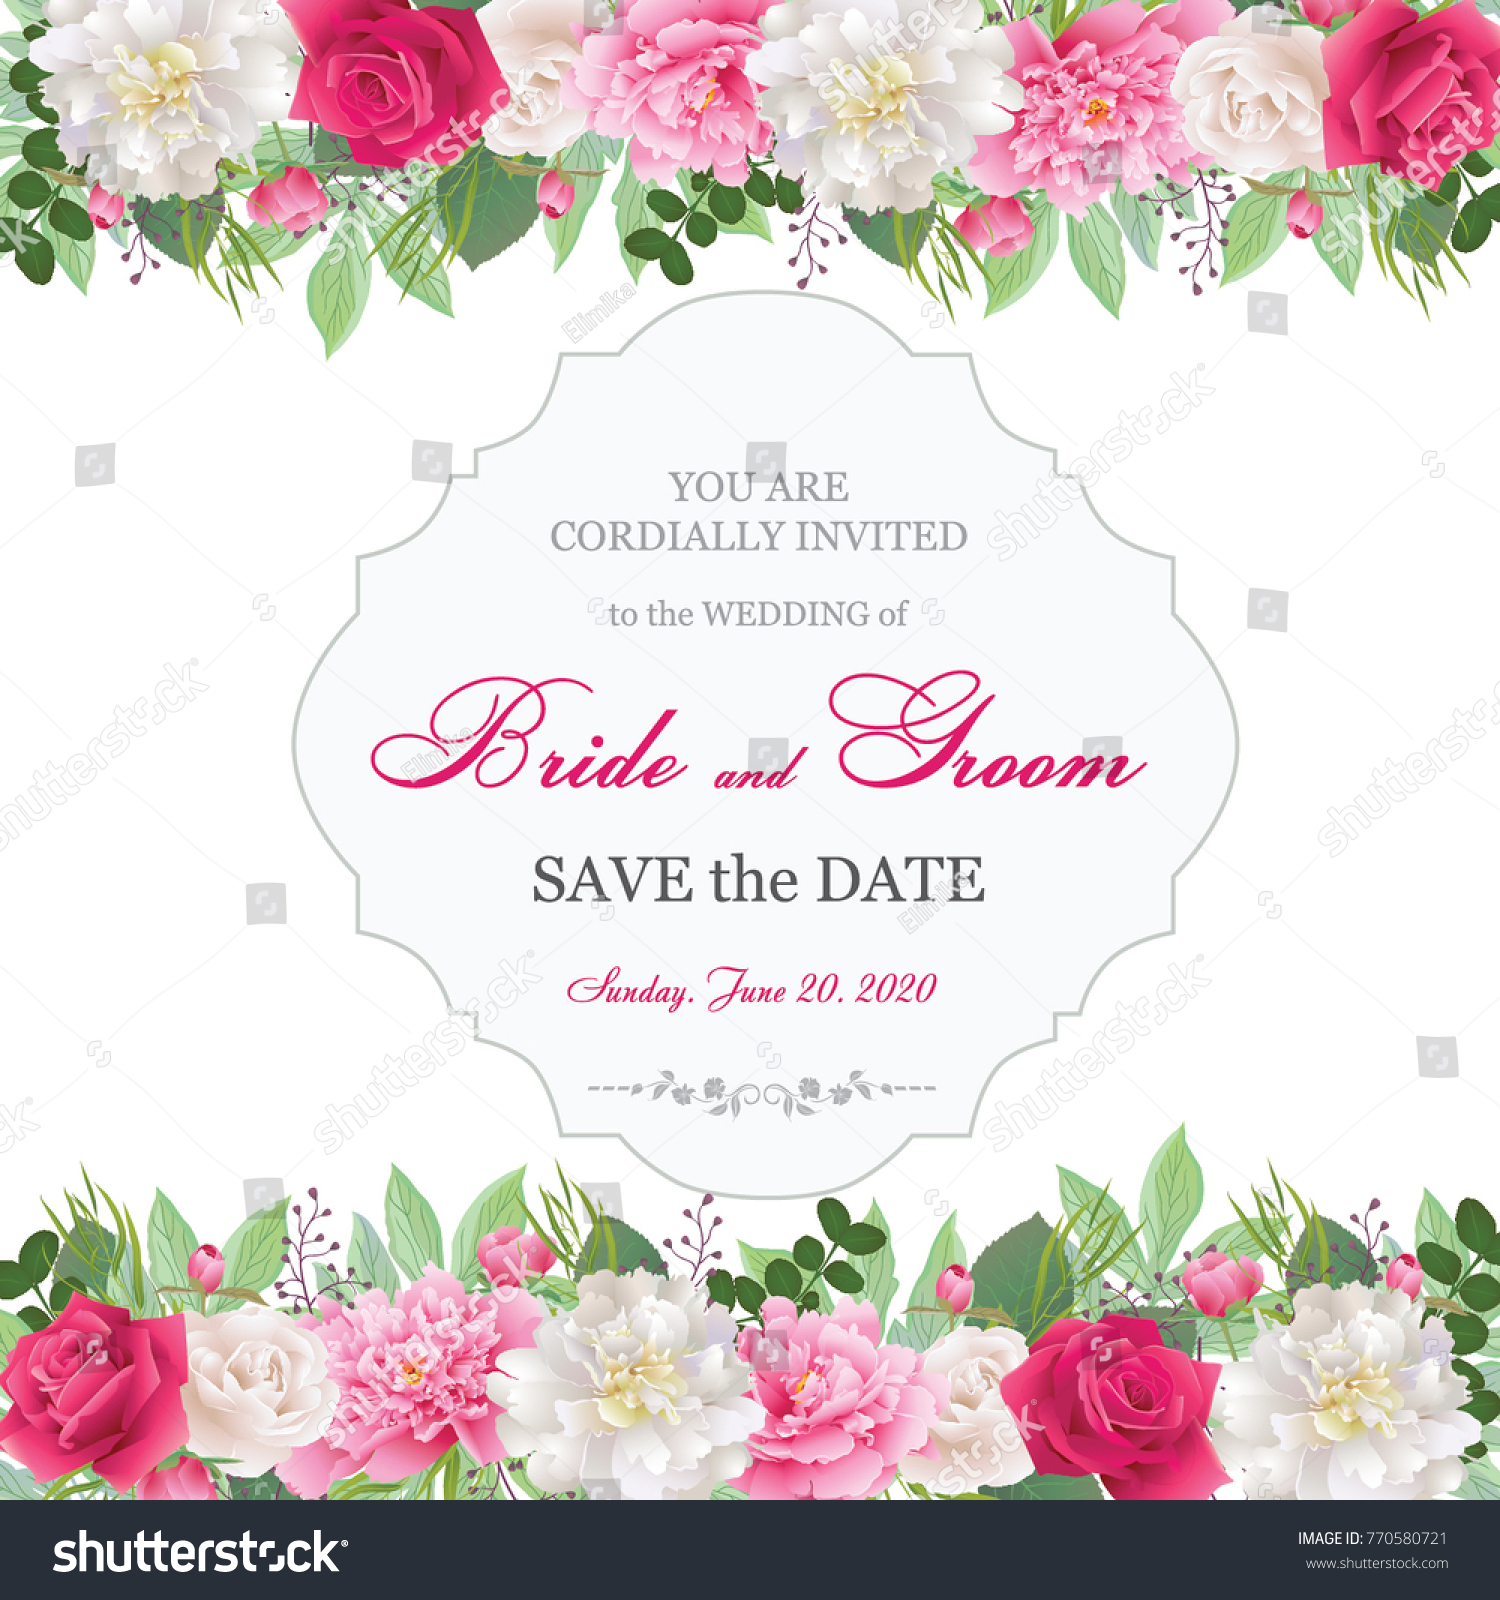 Wedding invitation cards roses peoniesbeautiful white stock vector wedding invitation cards with roses and peoniesautiful white and red roses pink and monicamarmolfo Gallery